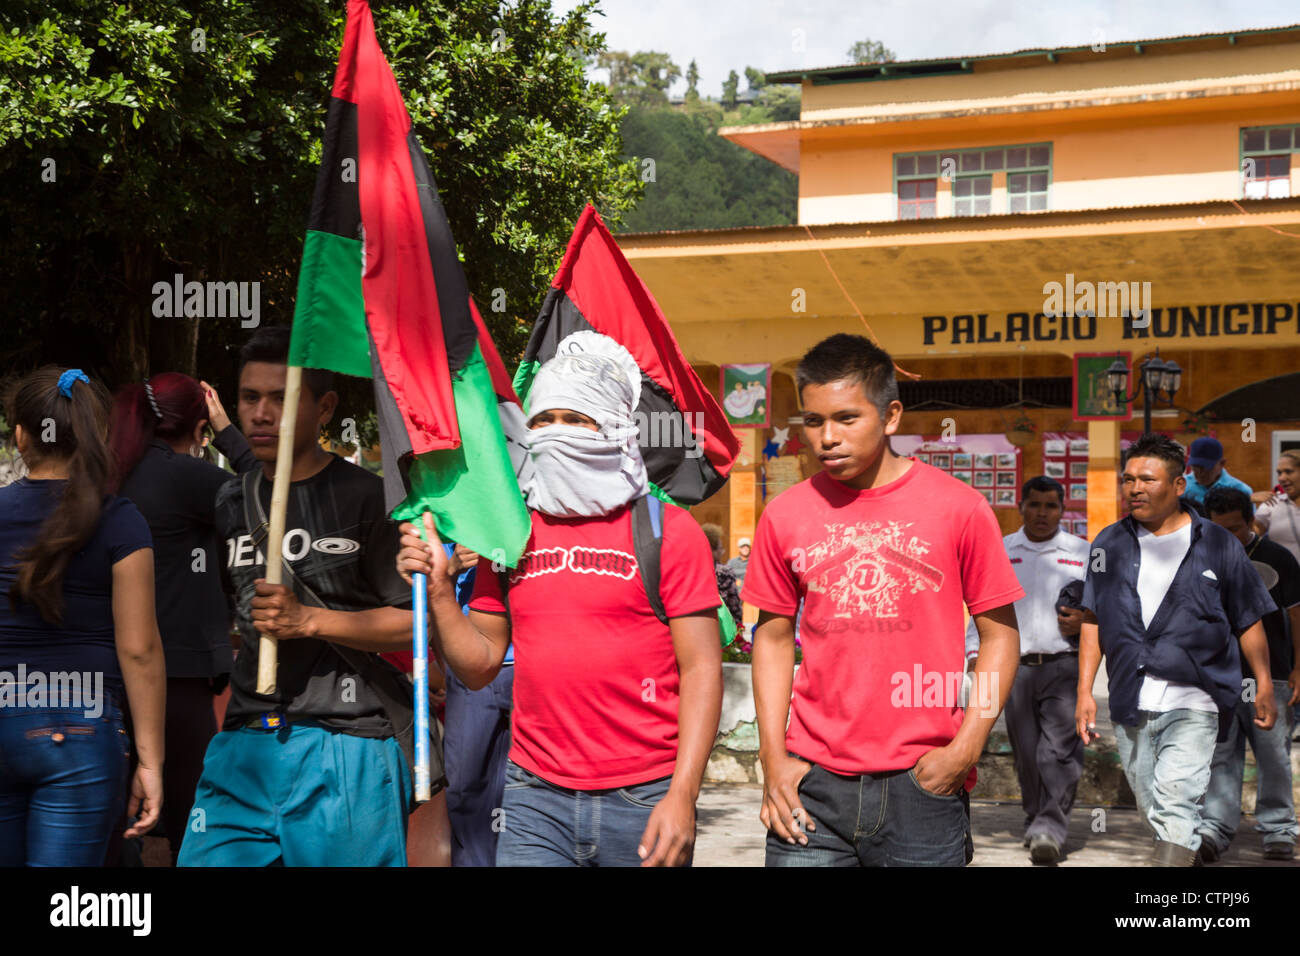 Indigenous People March In Protest To Environmental And Land Disputes Stock Photo Alamy